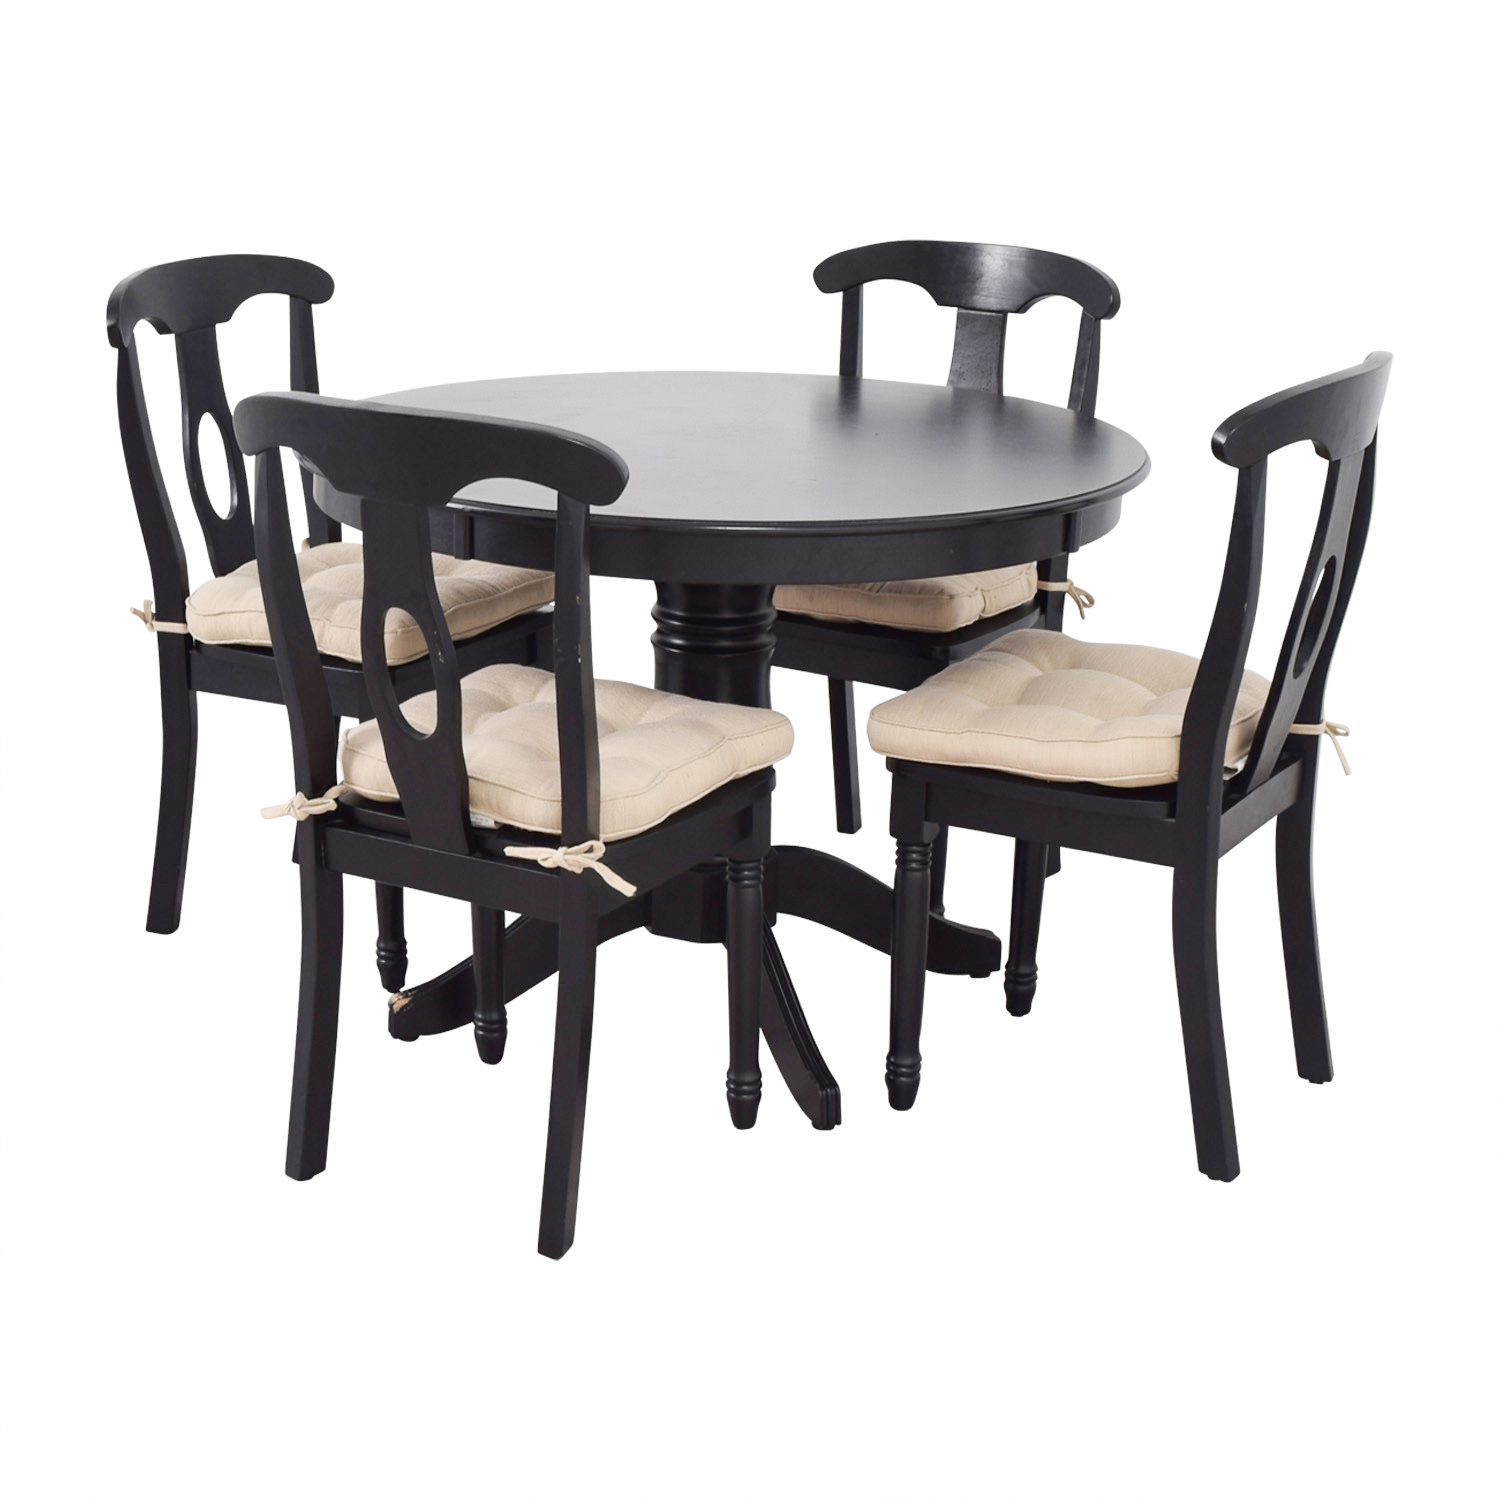 Walmart table and chairs set images martha stewart dining room table images ideas walmart - Martha stewart dining room furniture ...